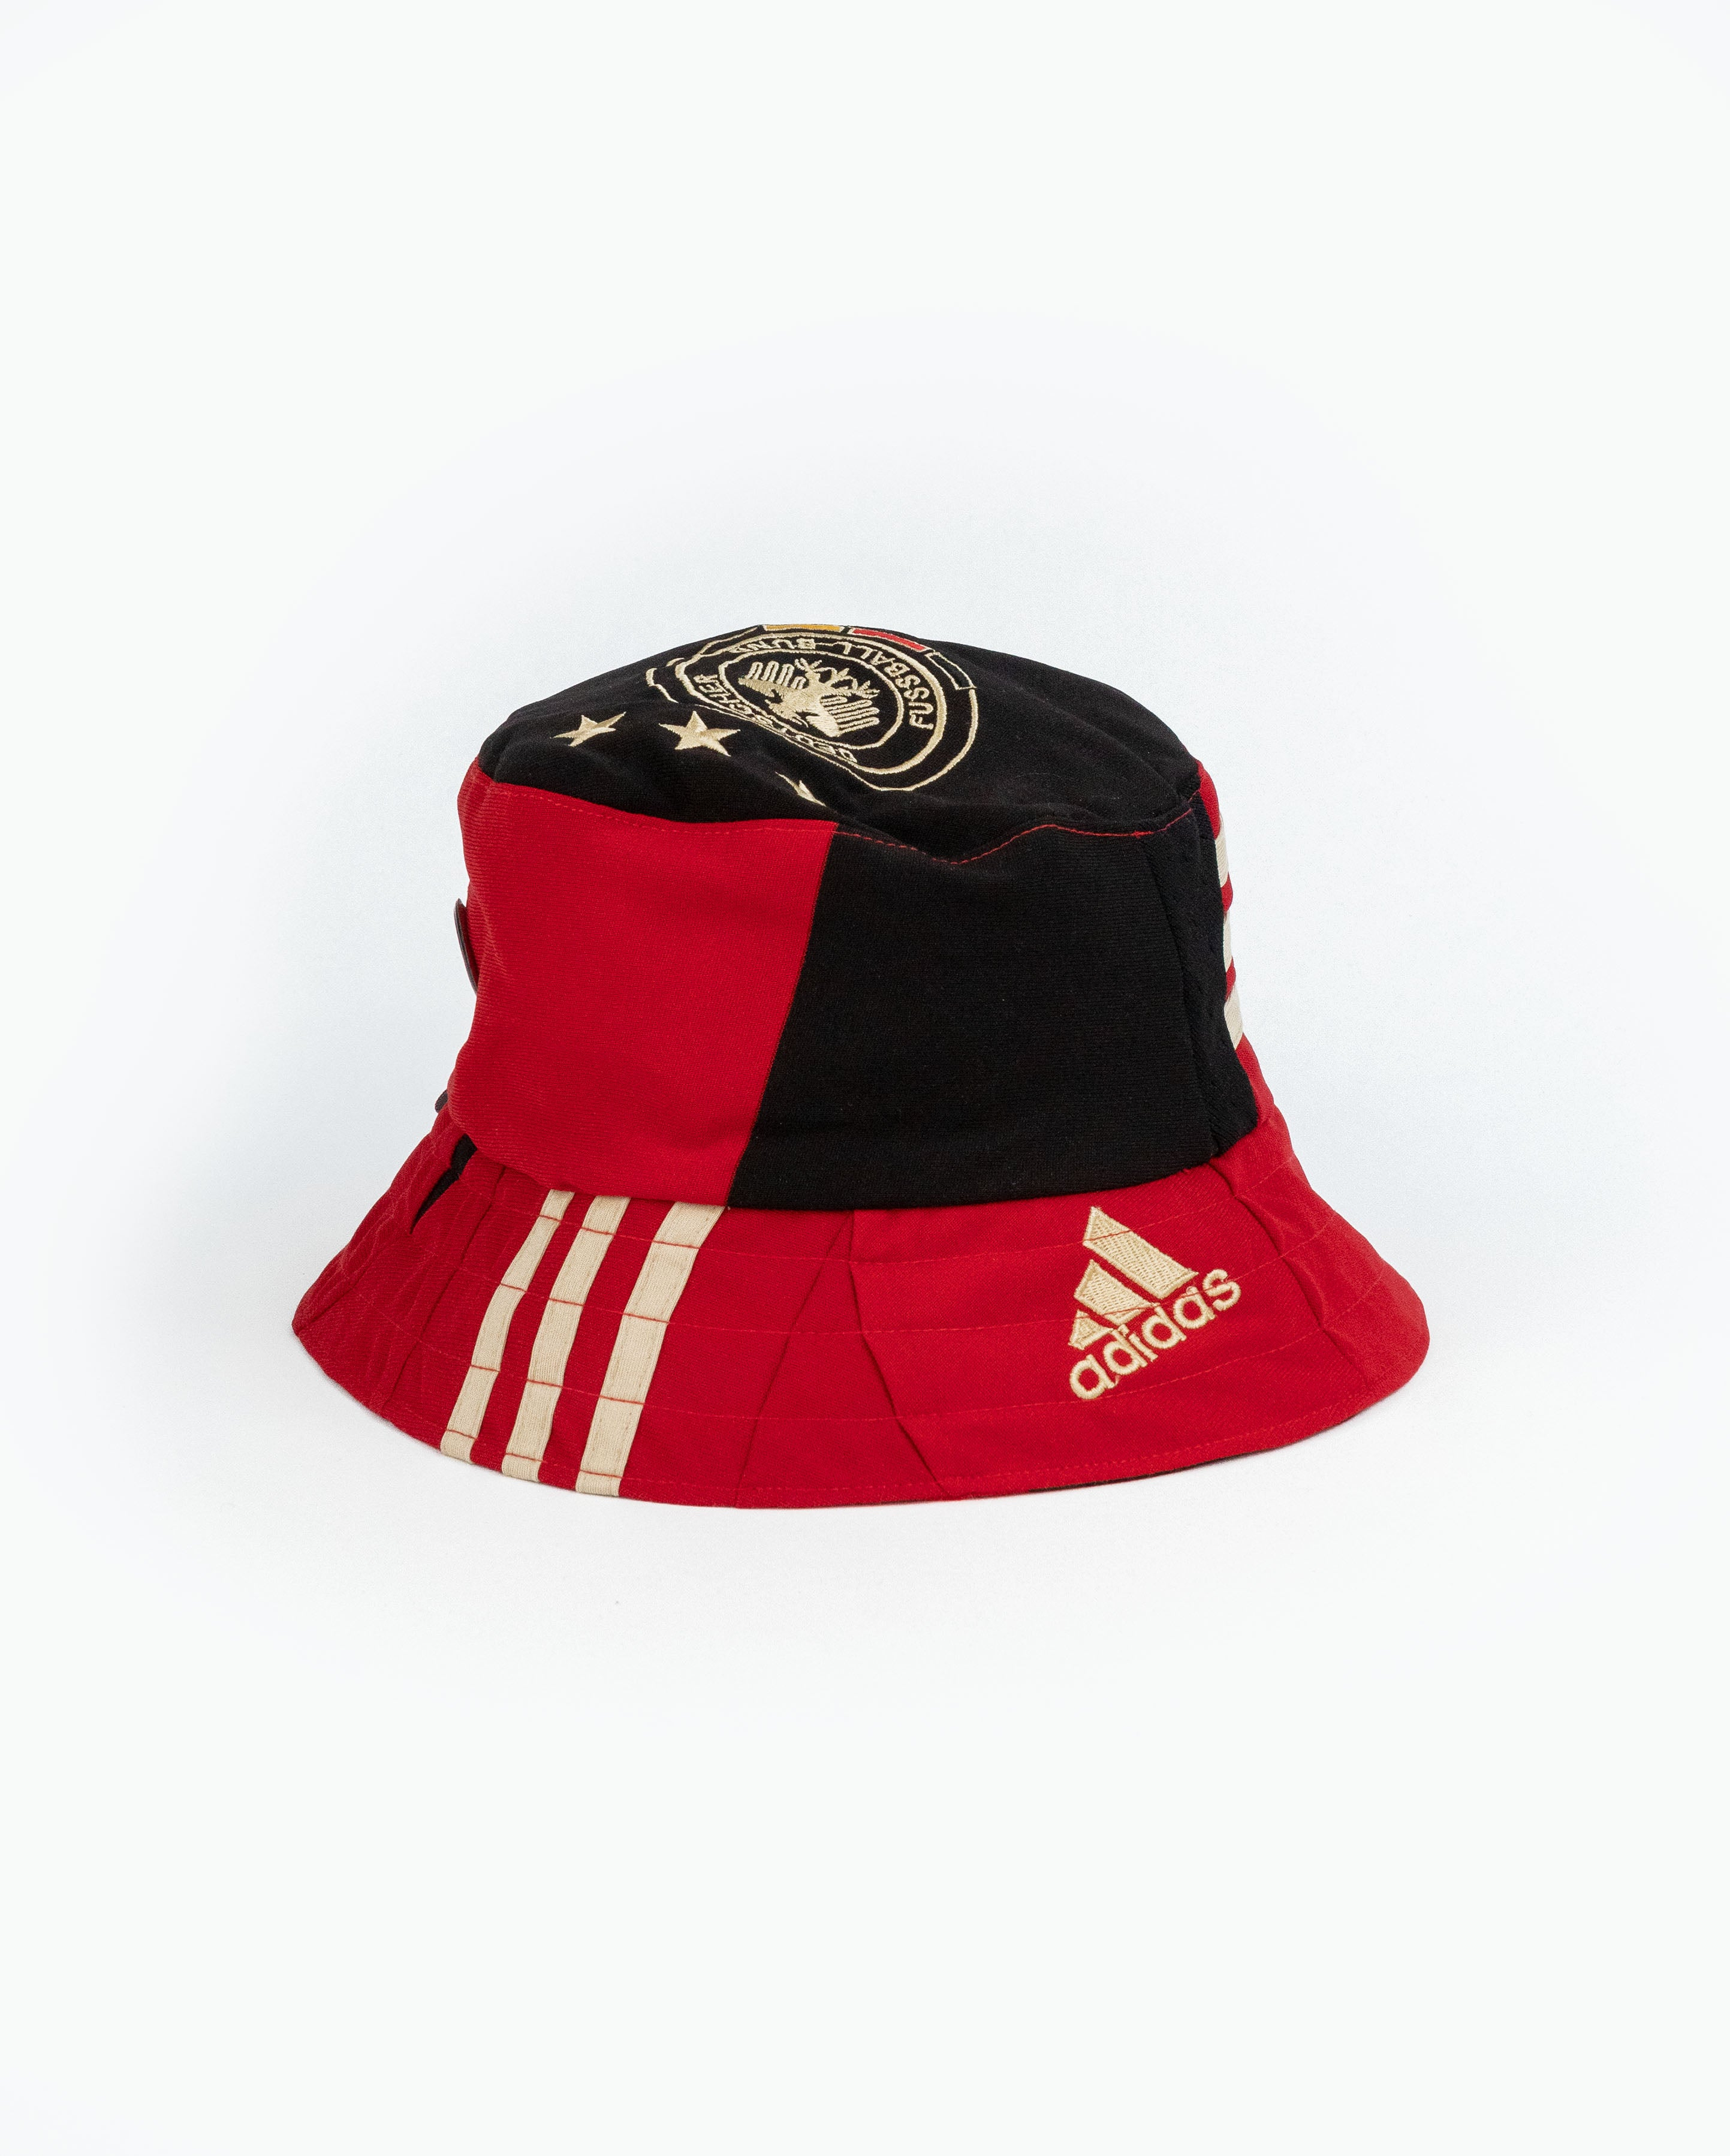 Germany Reworked Bucket Hat #344